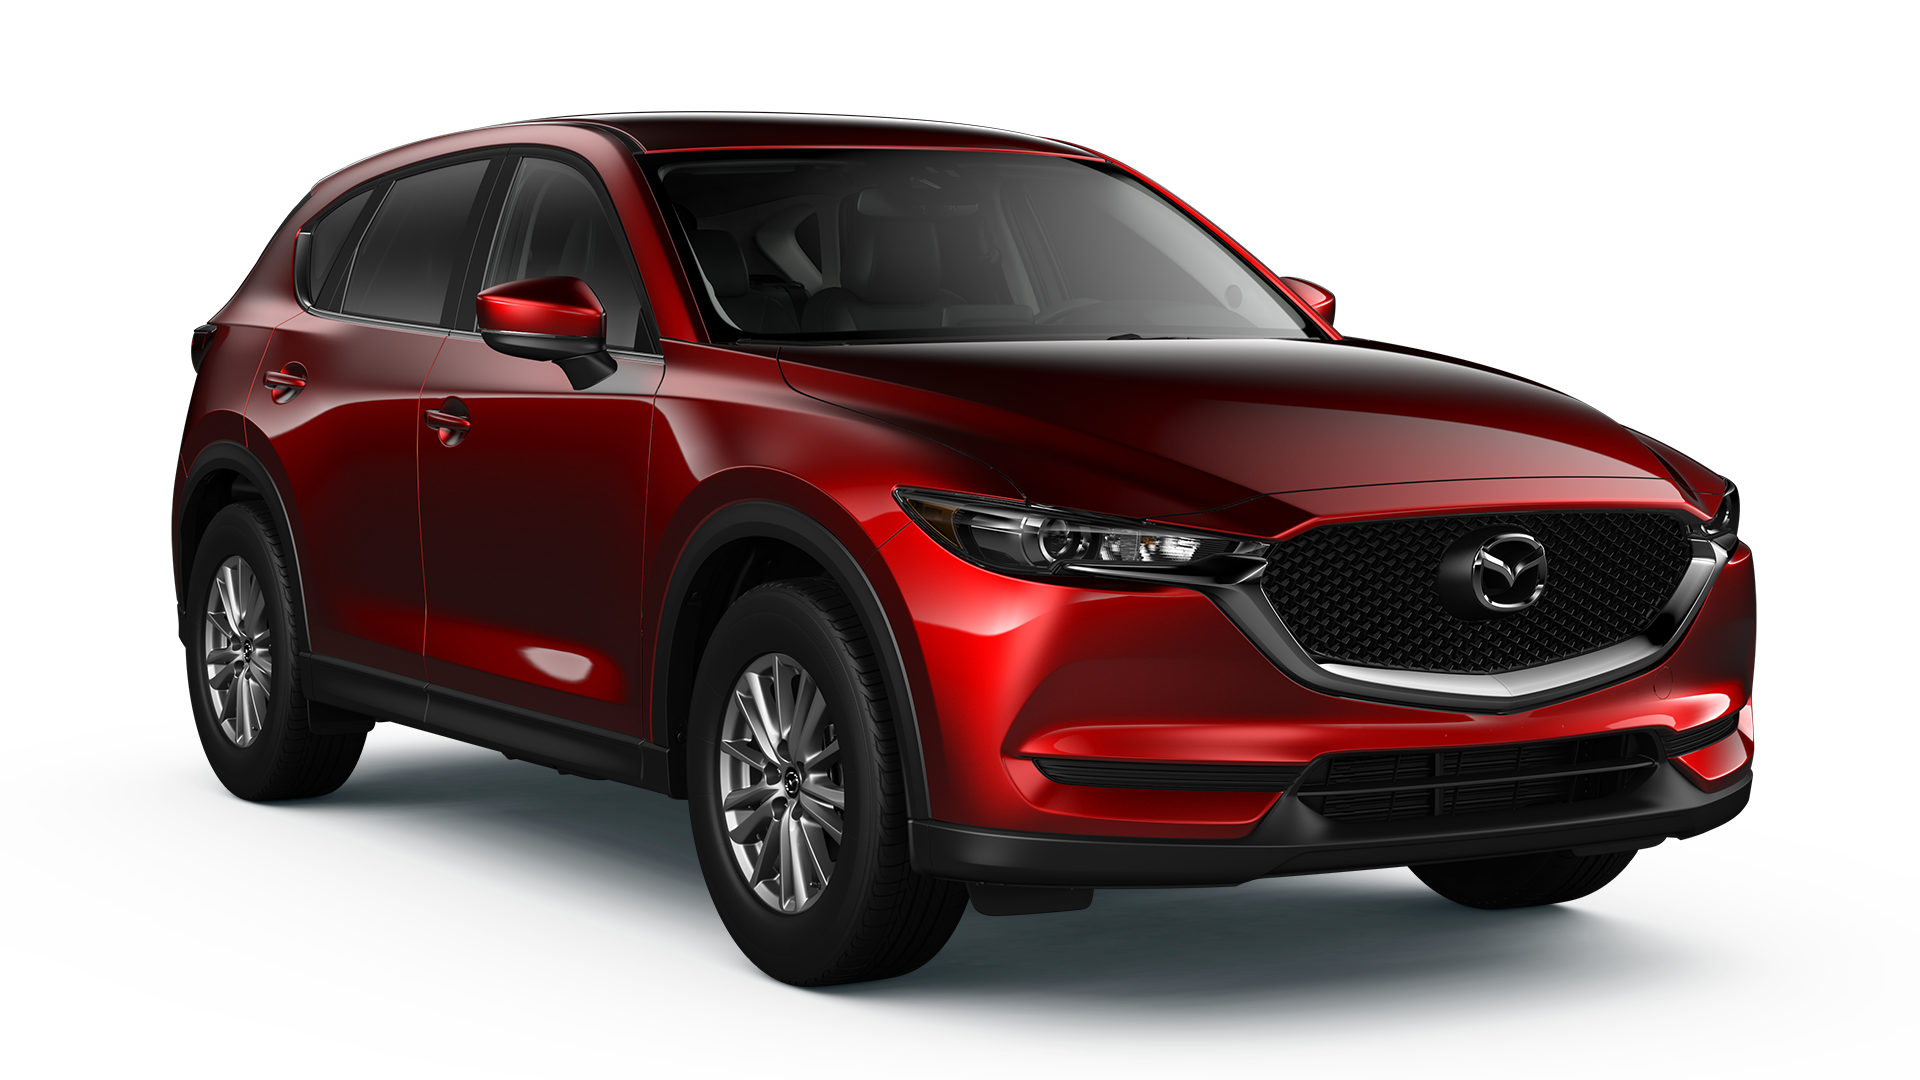 Price Of Mazda 5 >> 2018 CX-5 | 5-Seat SUV | Mazda Canada